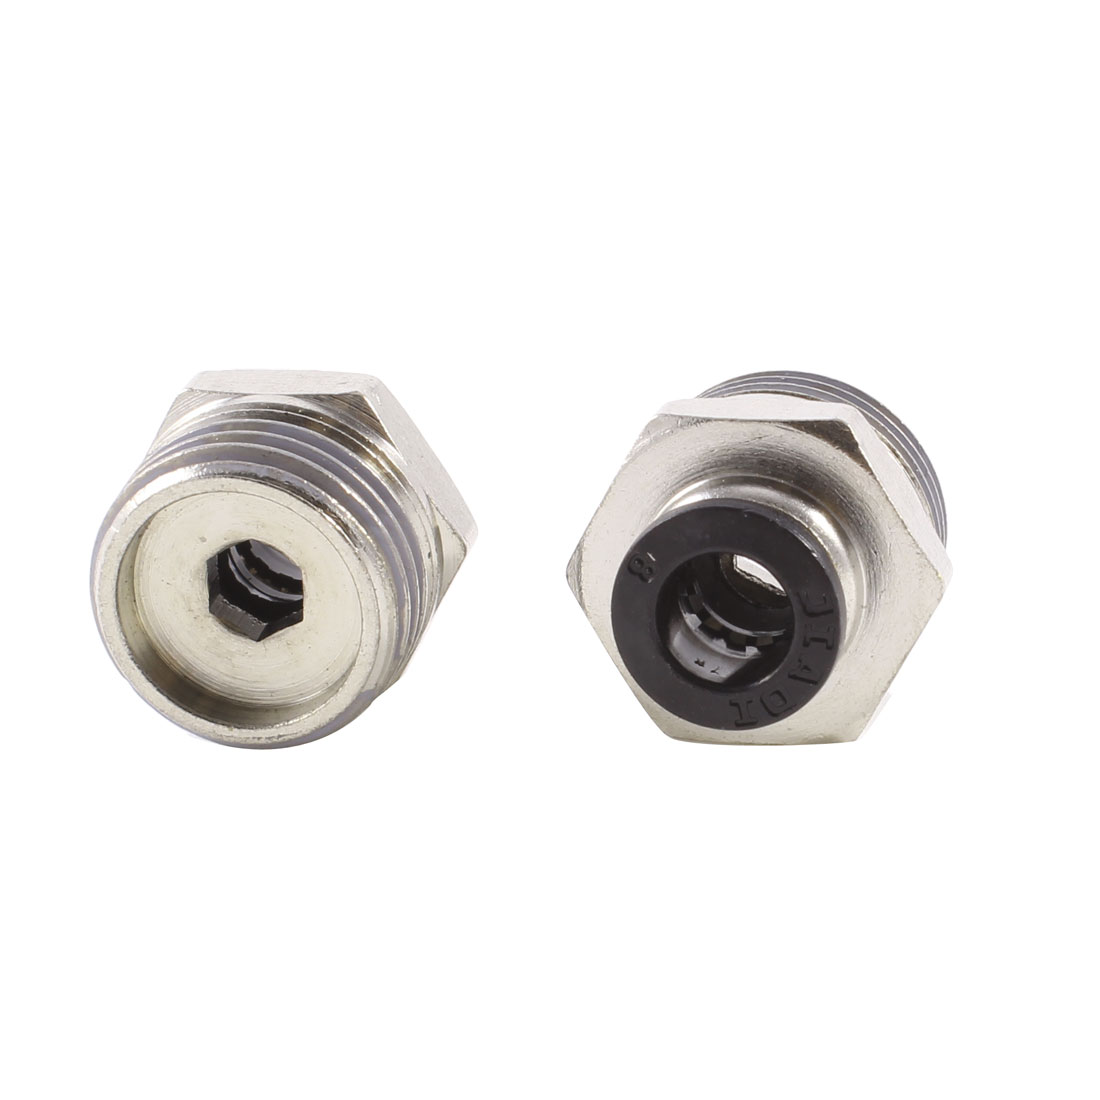 "2 Pcs 1/2"" PT OD Tubing 8mm Push In Joint Pneumatic Connector Quick Fitting"